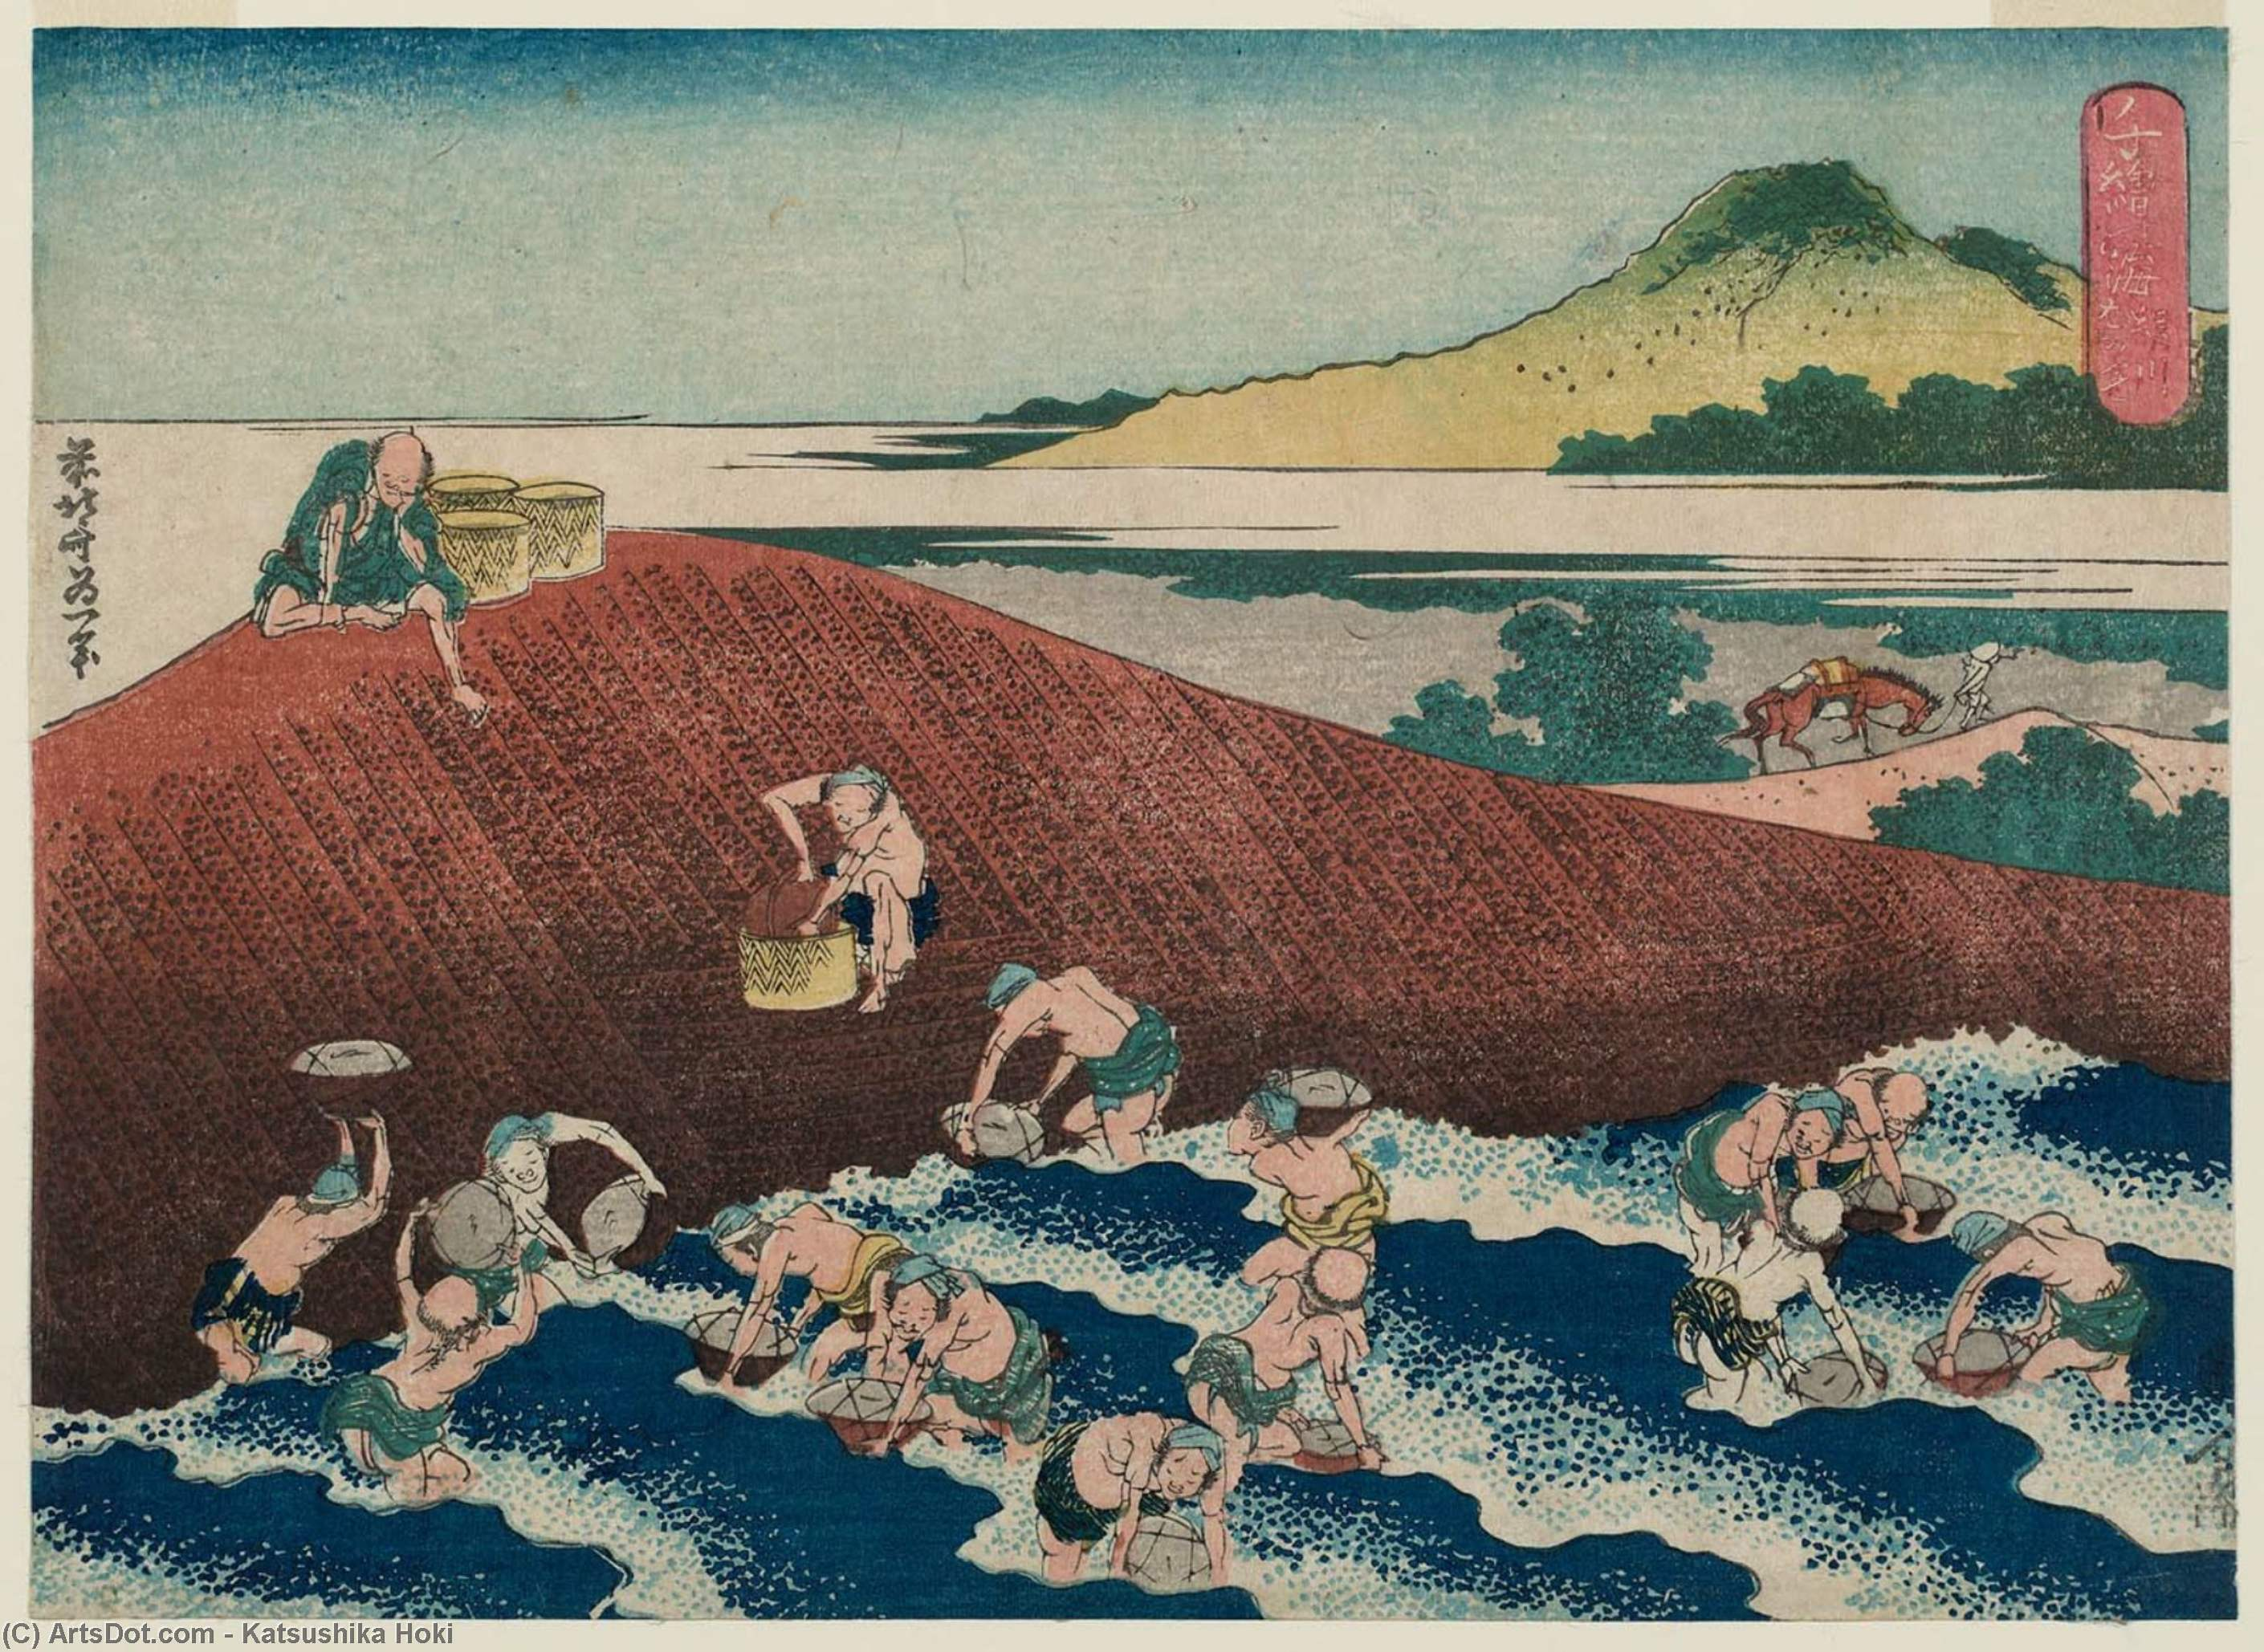 Basket-fishing in der Kinu Fluss von Katsushika Hokusai (1760-1849, Japan)